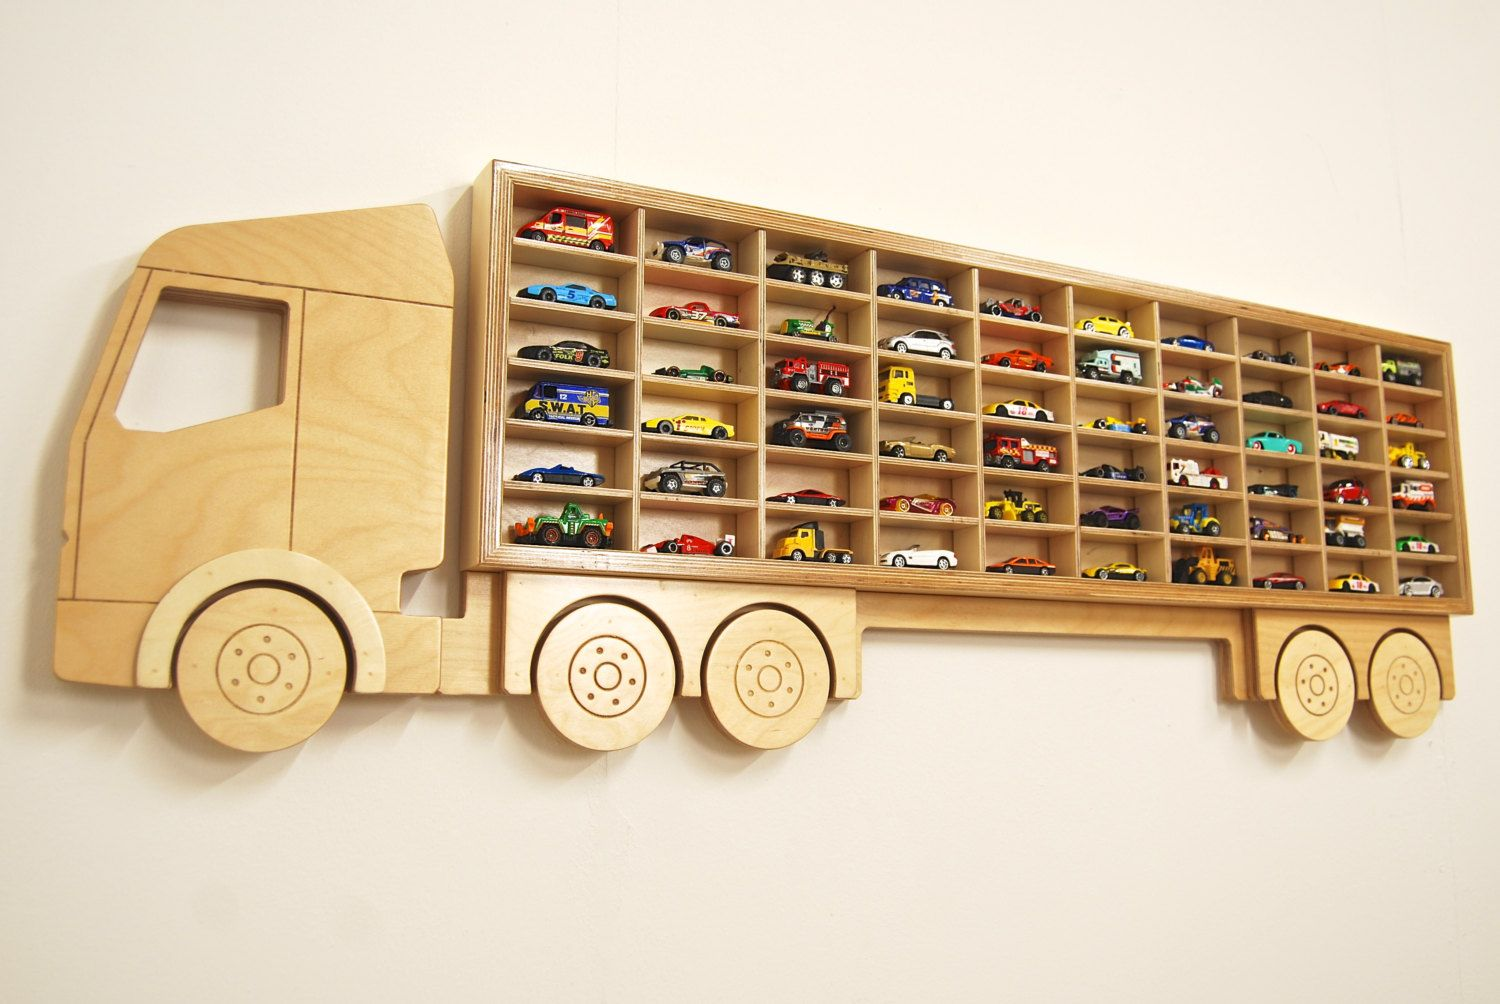 Perfect Get Awesome Ideas For Storing And Displaying Small Toy Cars!